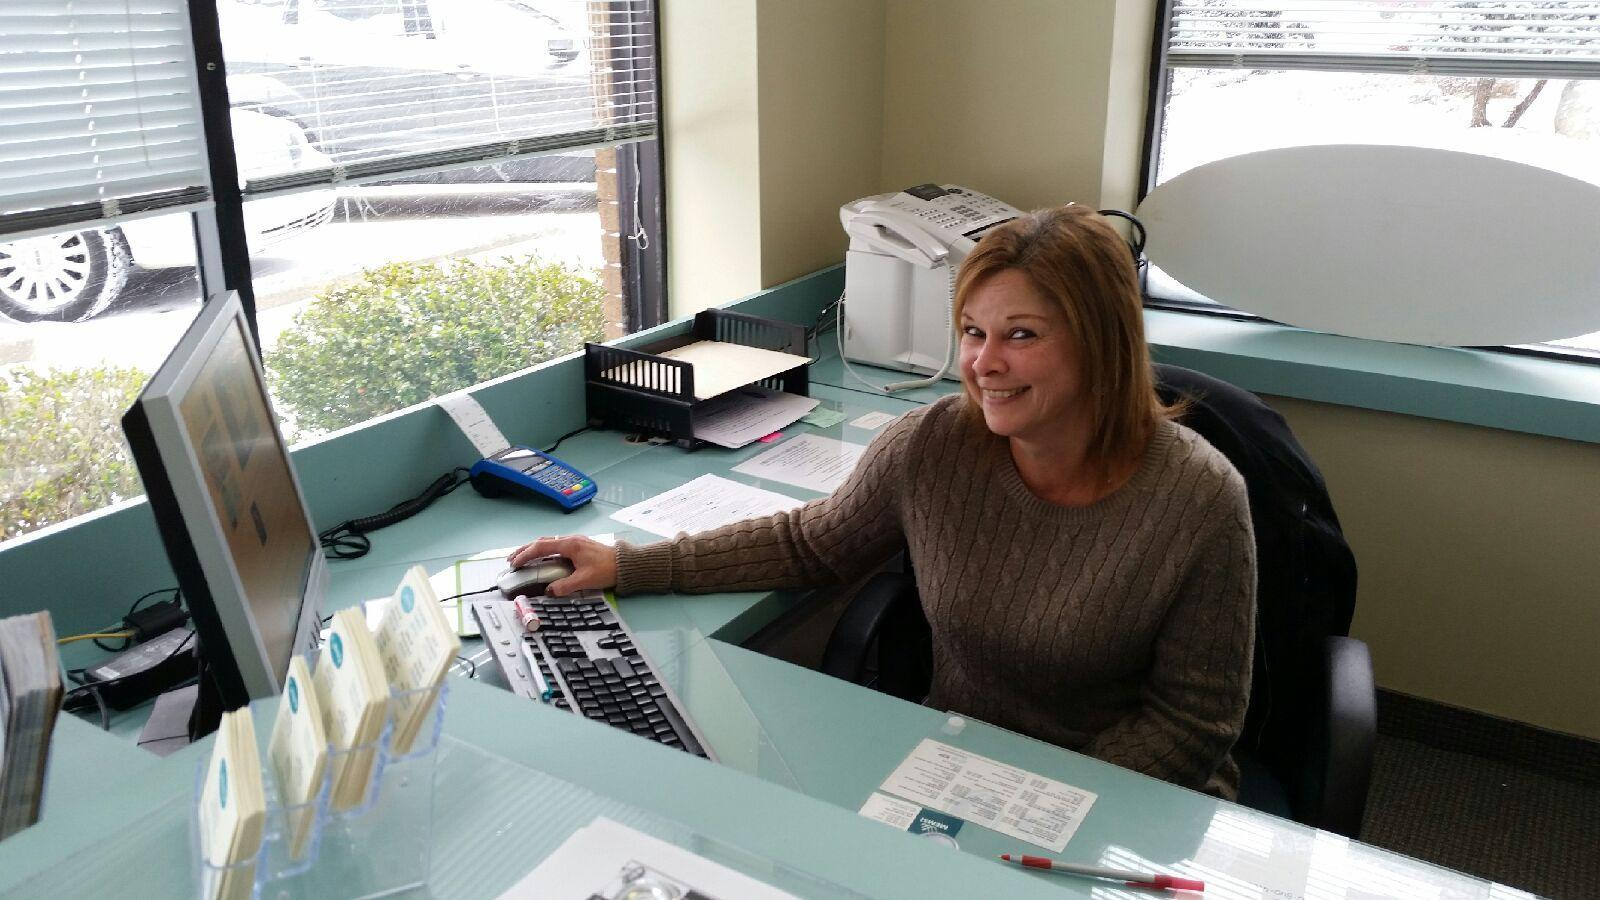 Profile Photo of Lisa - Service Technician and Office Assistant